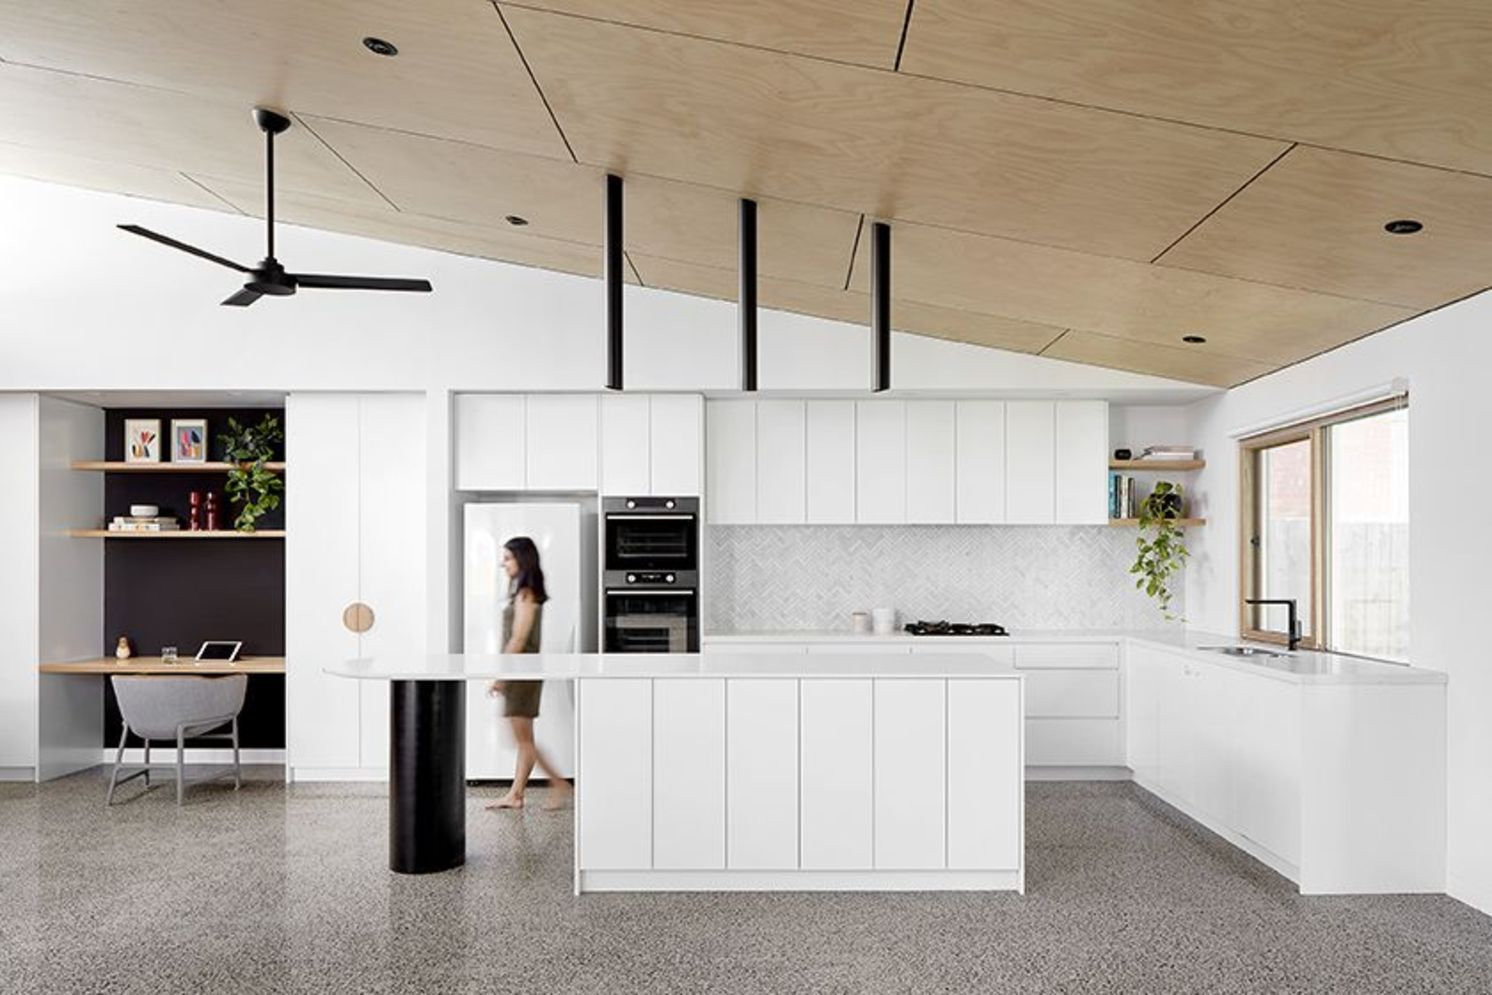 Artsy terrazzo flooring bringing back the classy vintage accent combined in modern simple interior style Image 23